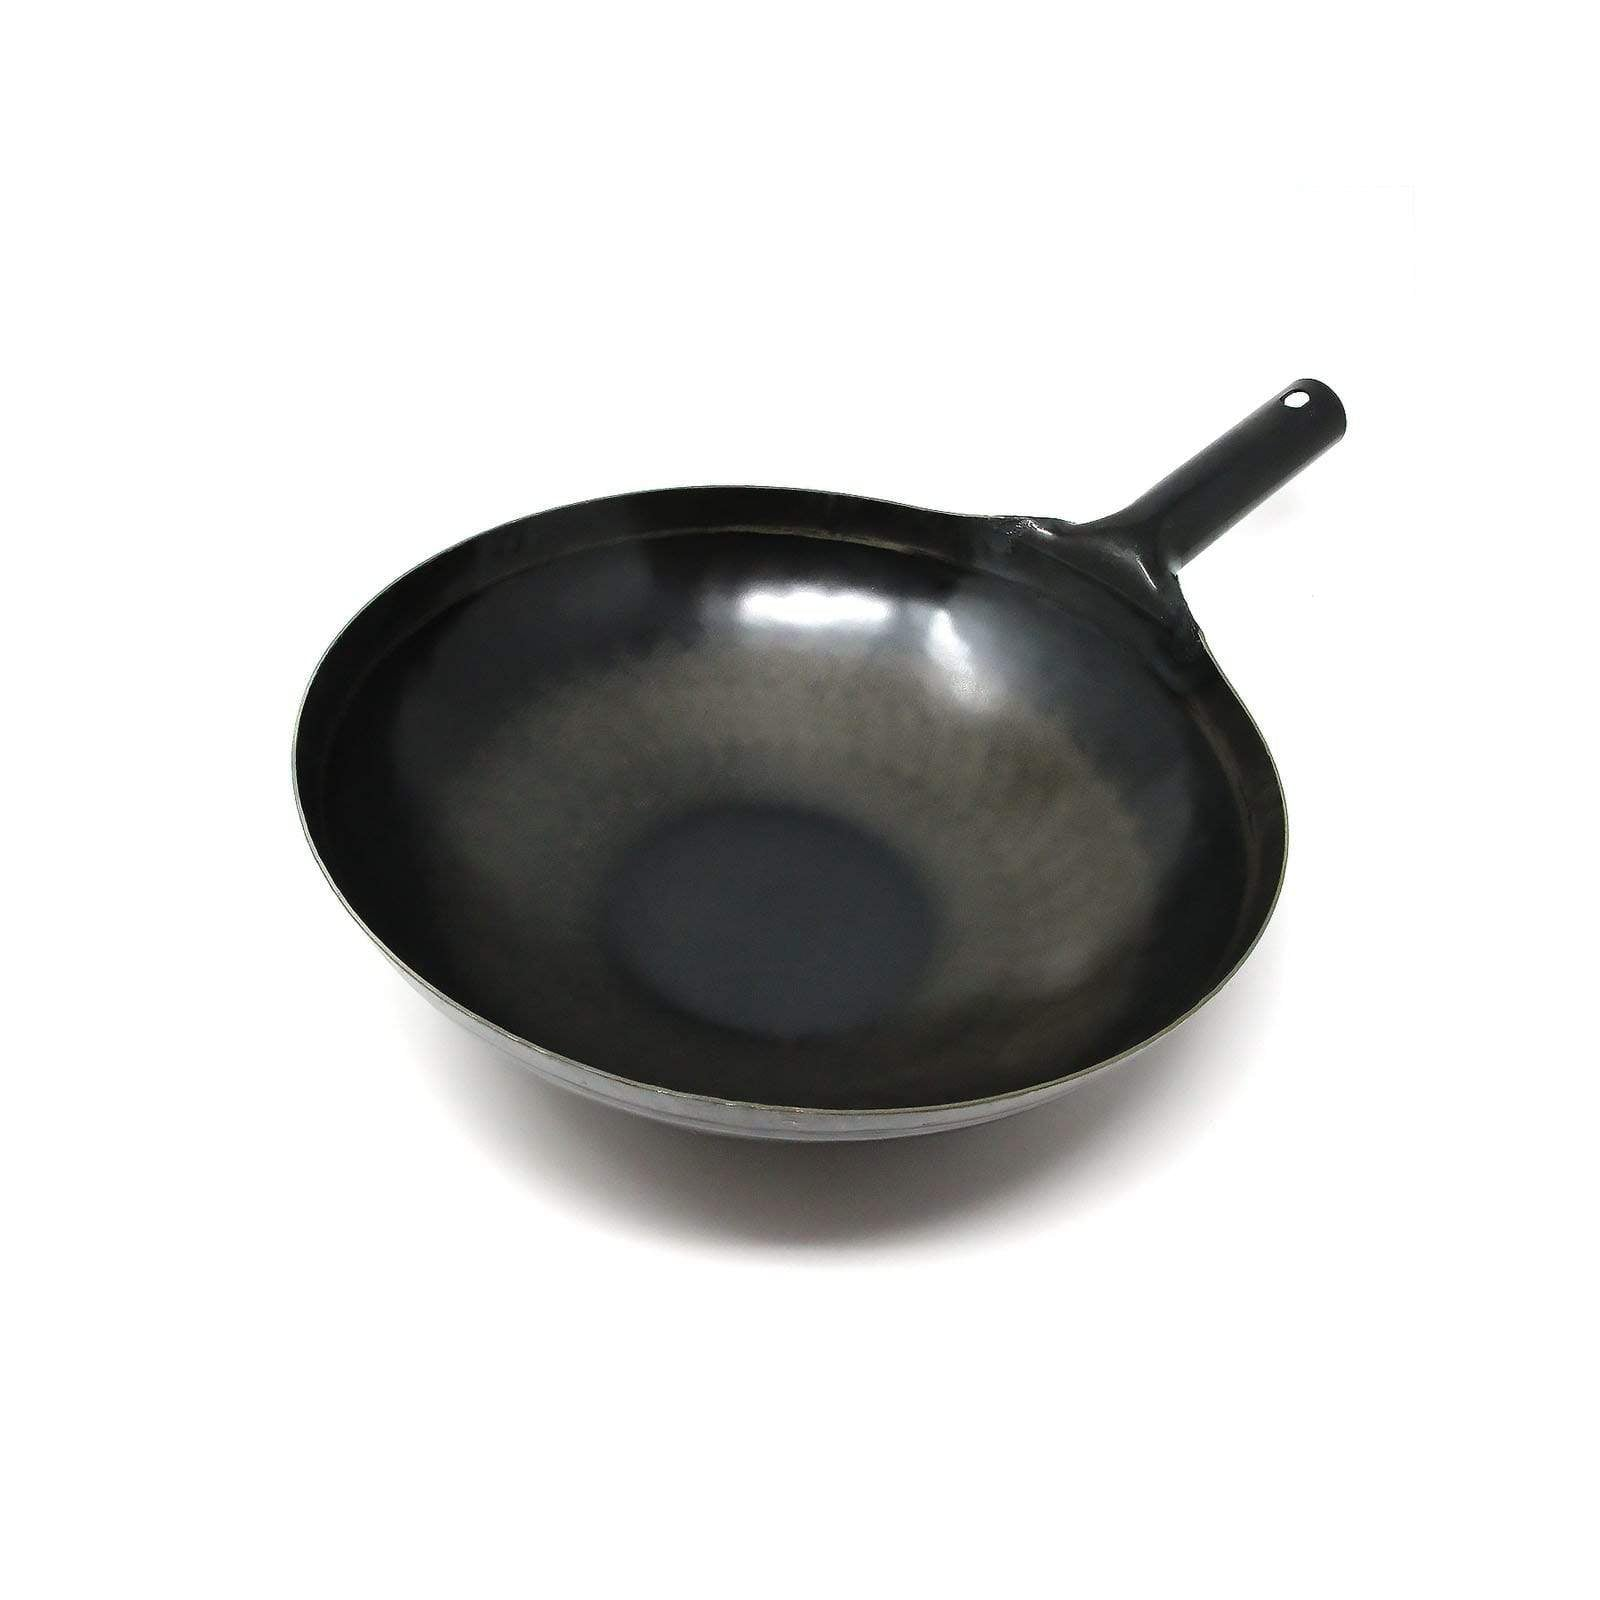 Yamada Hammered Iron Round Bottom Wok (1.6mm Thickness) Hammered Iron Woks